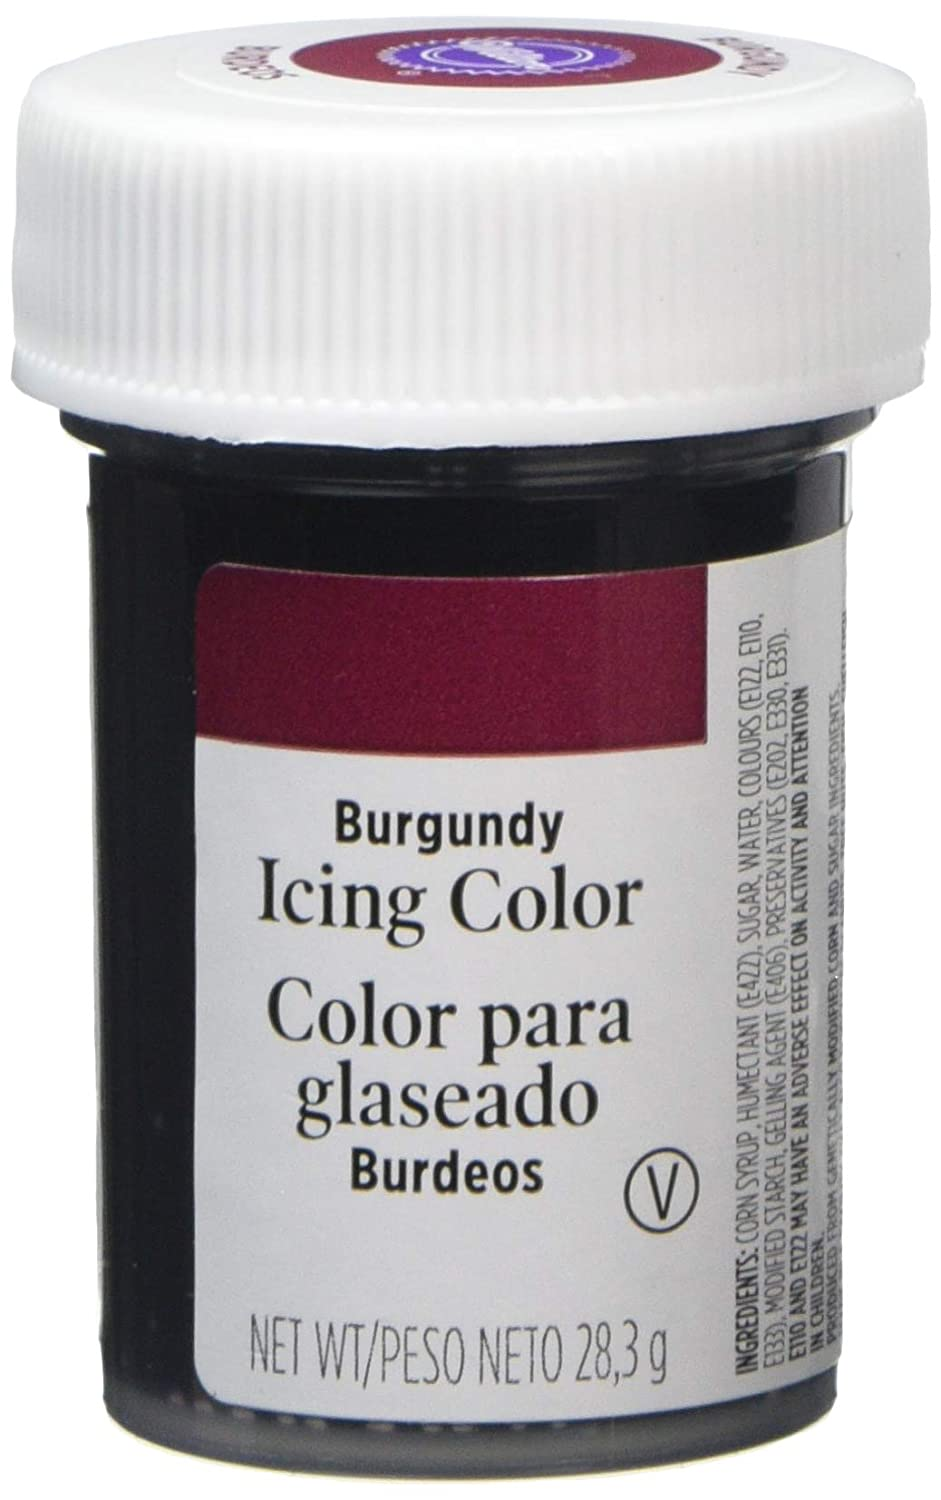 Wilton Icing Colors, 1-Ounce, Burgundy